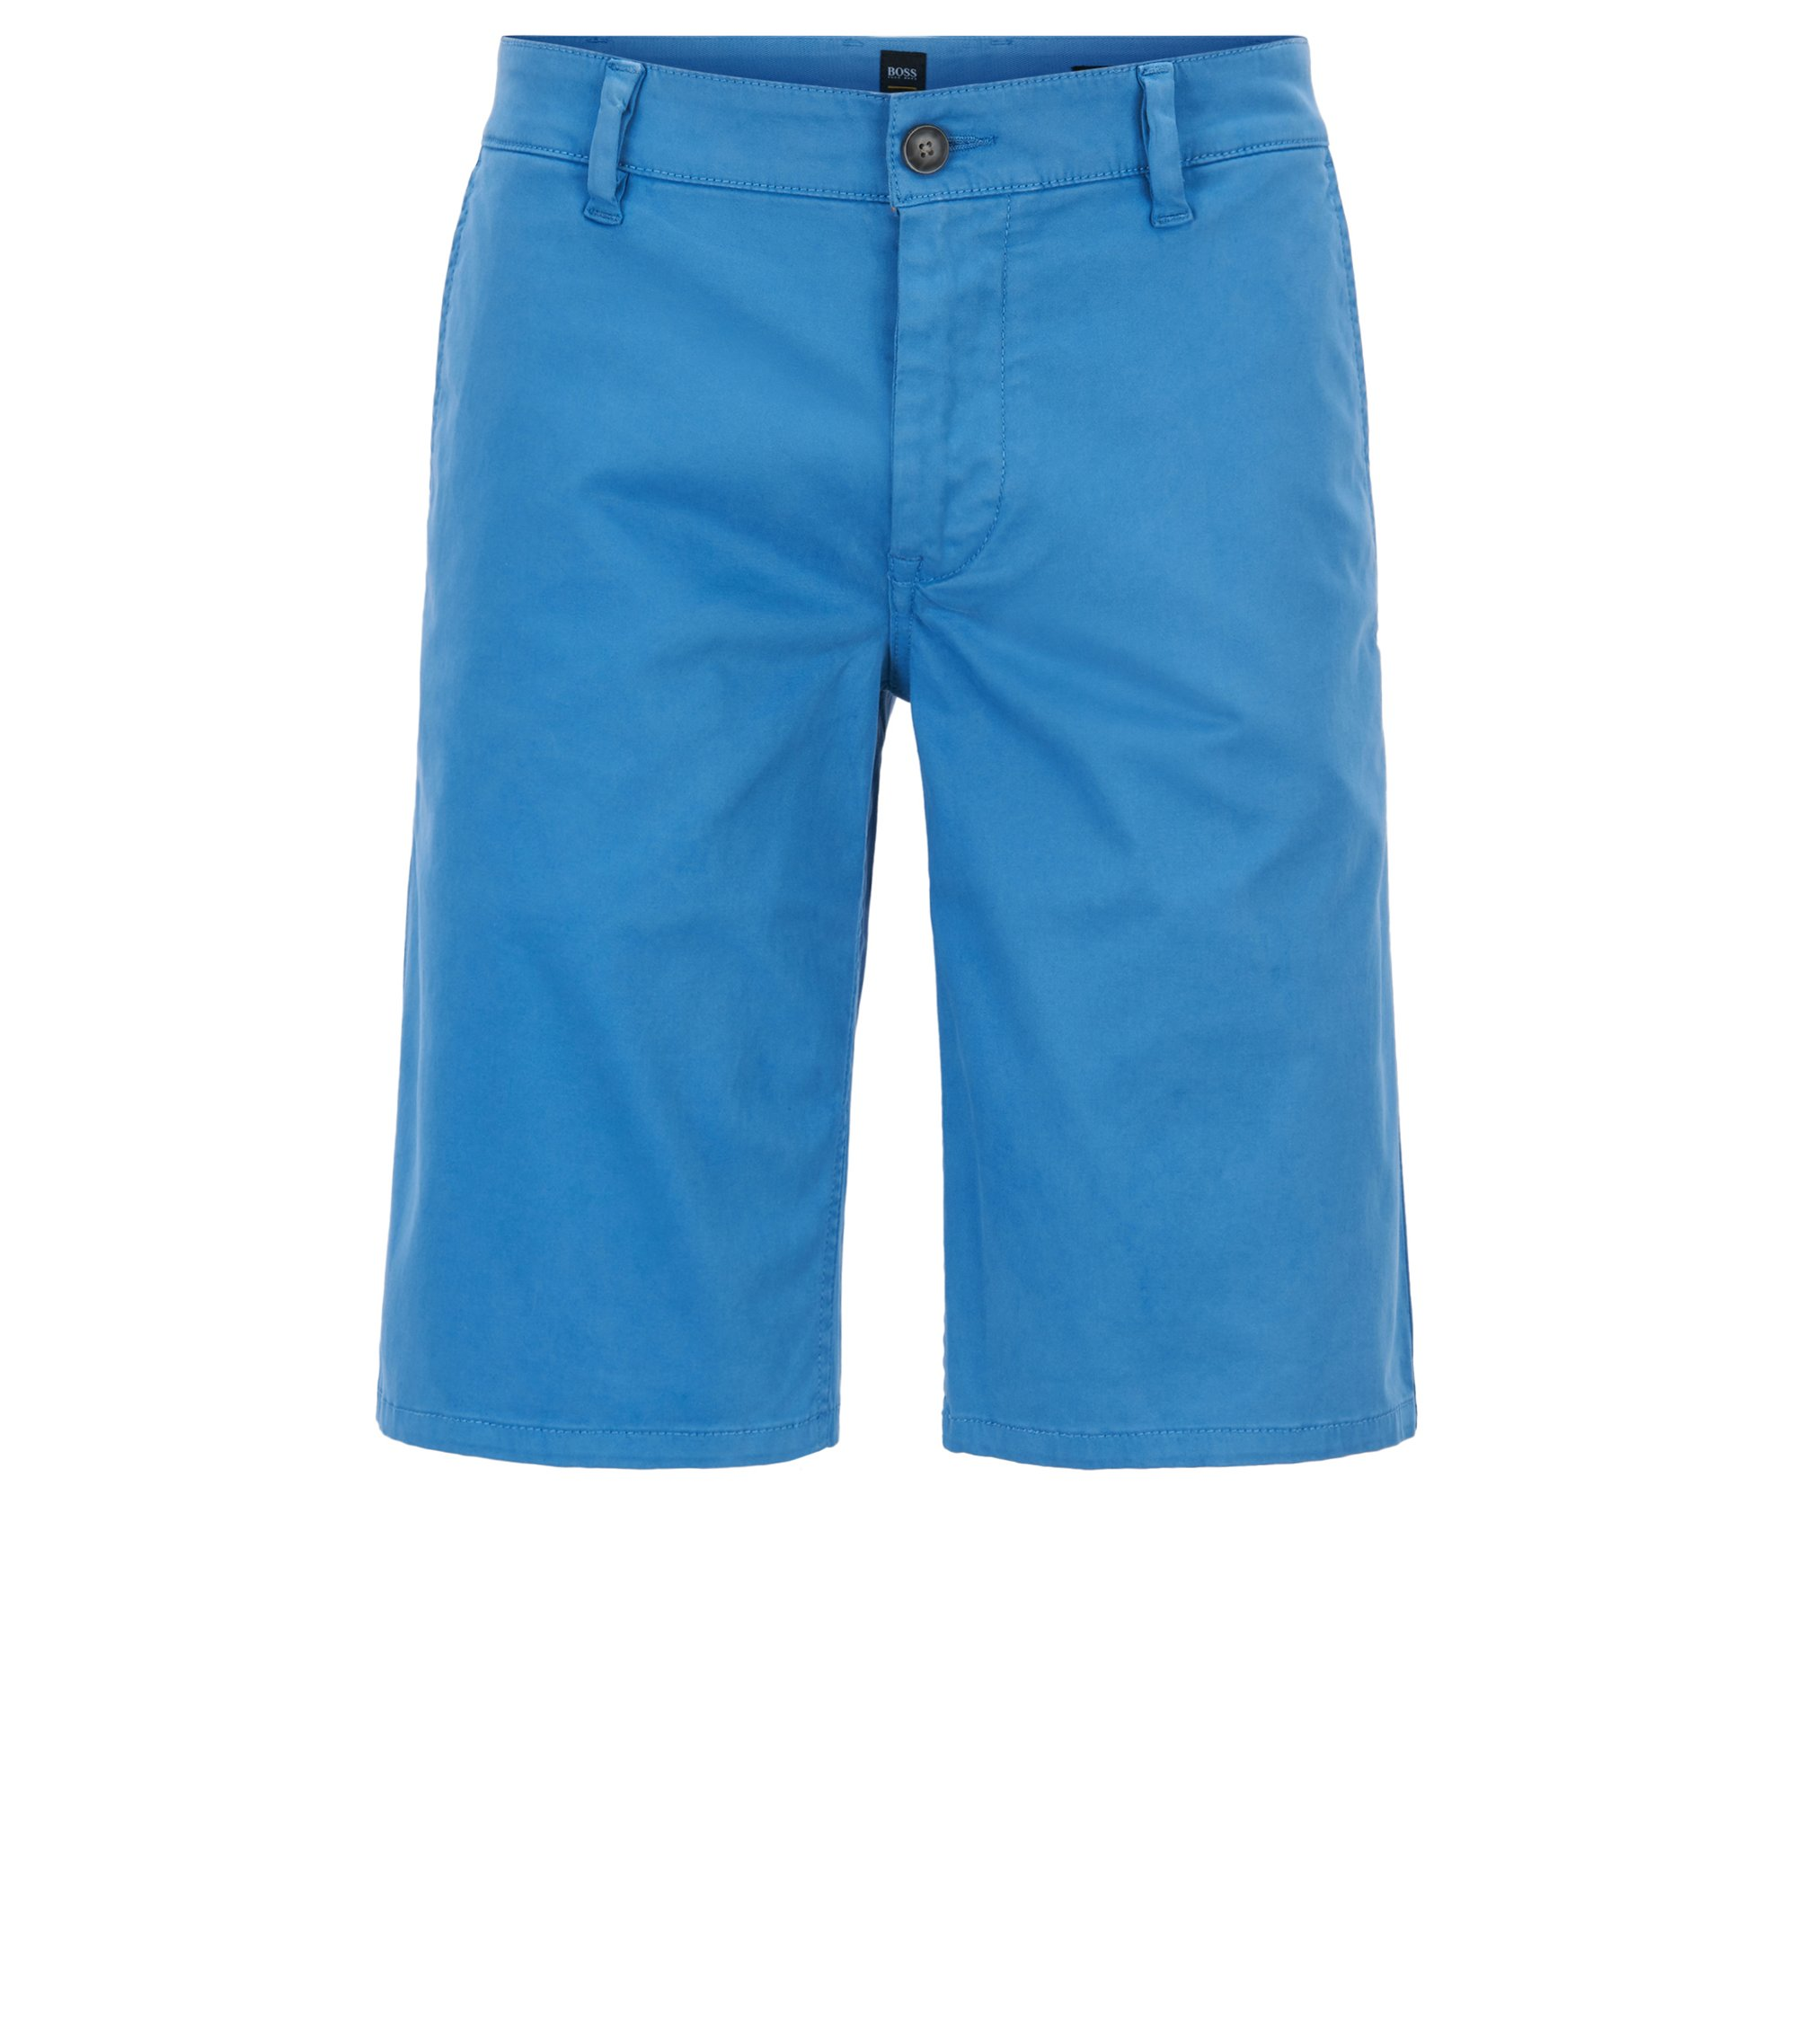 Regular-Fit Chino-Shorts aus elastischer Baumwolle, Blau